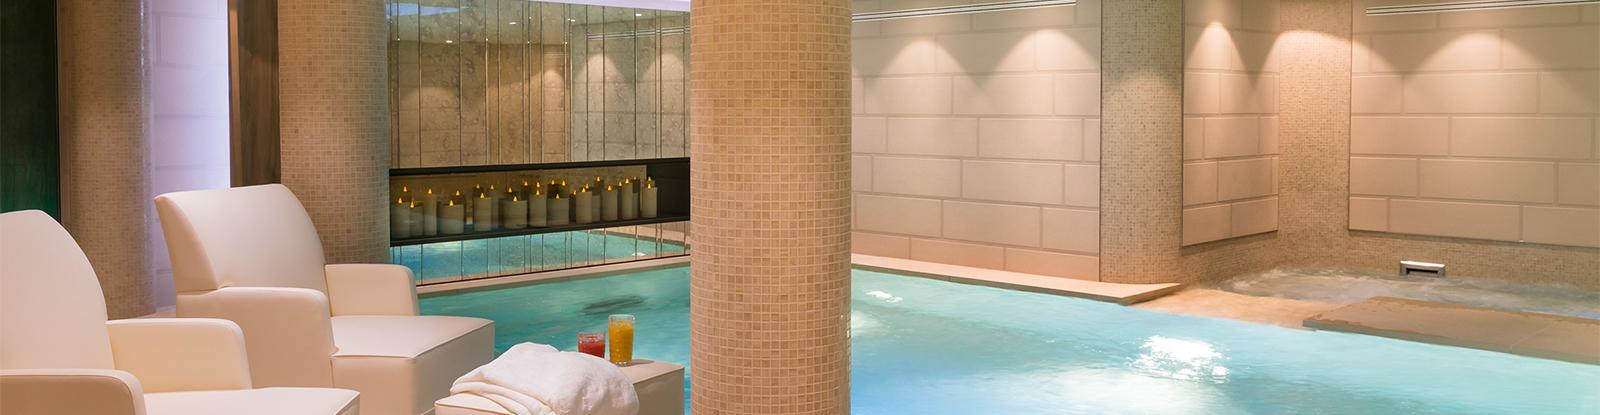 Spa Pont-Neuf by Cinq Mondes